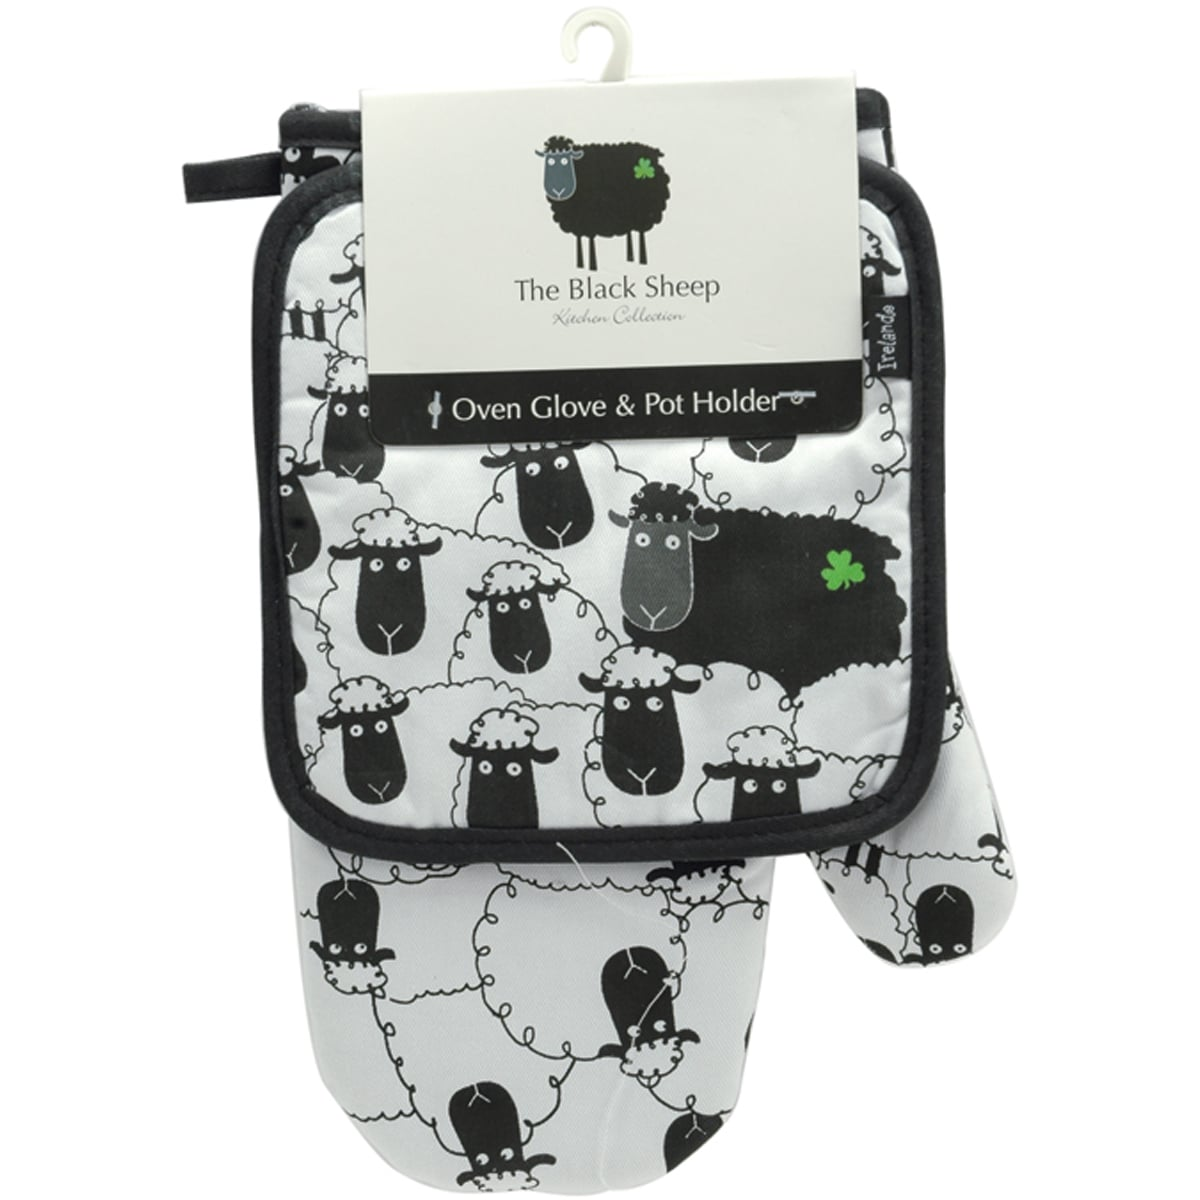 The Black Sheep Oven Glove and Pot Holder Set